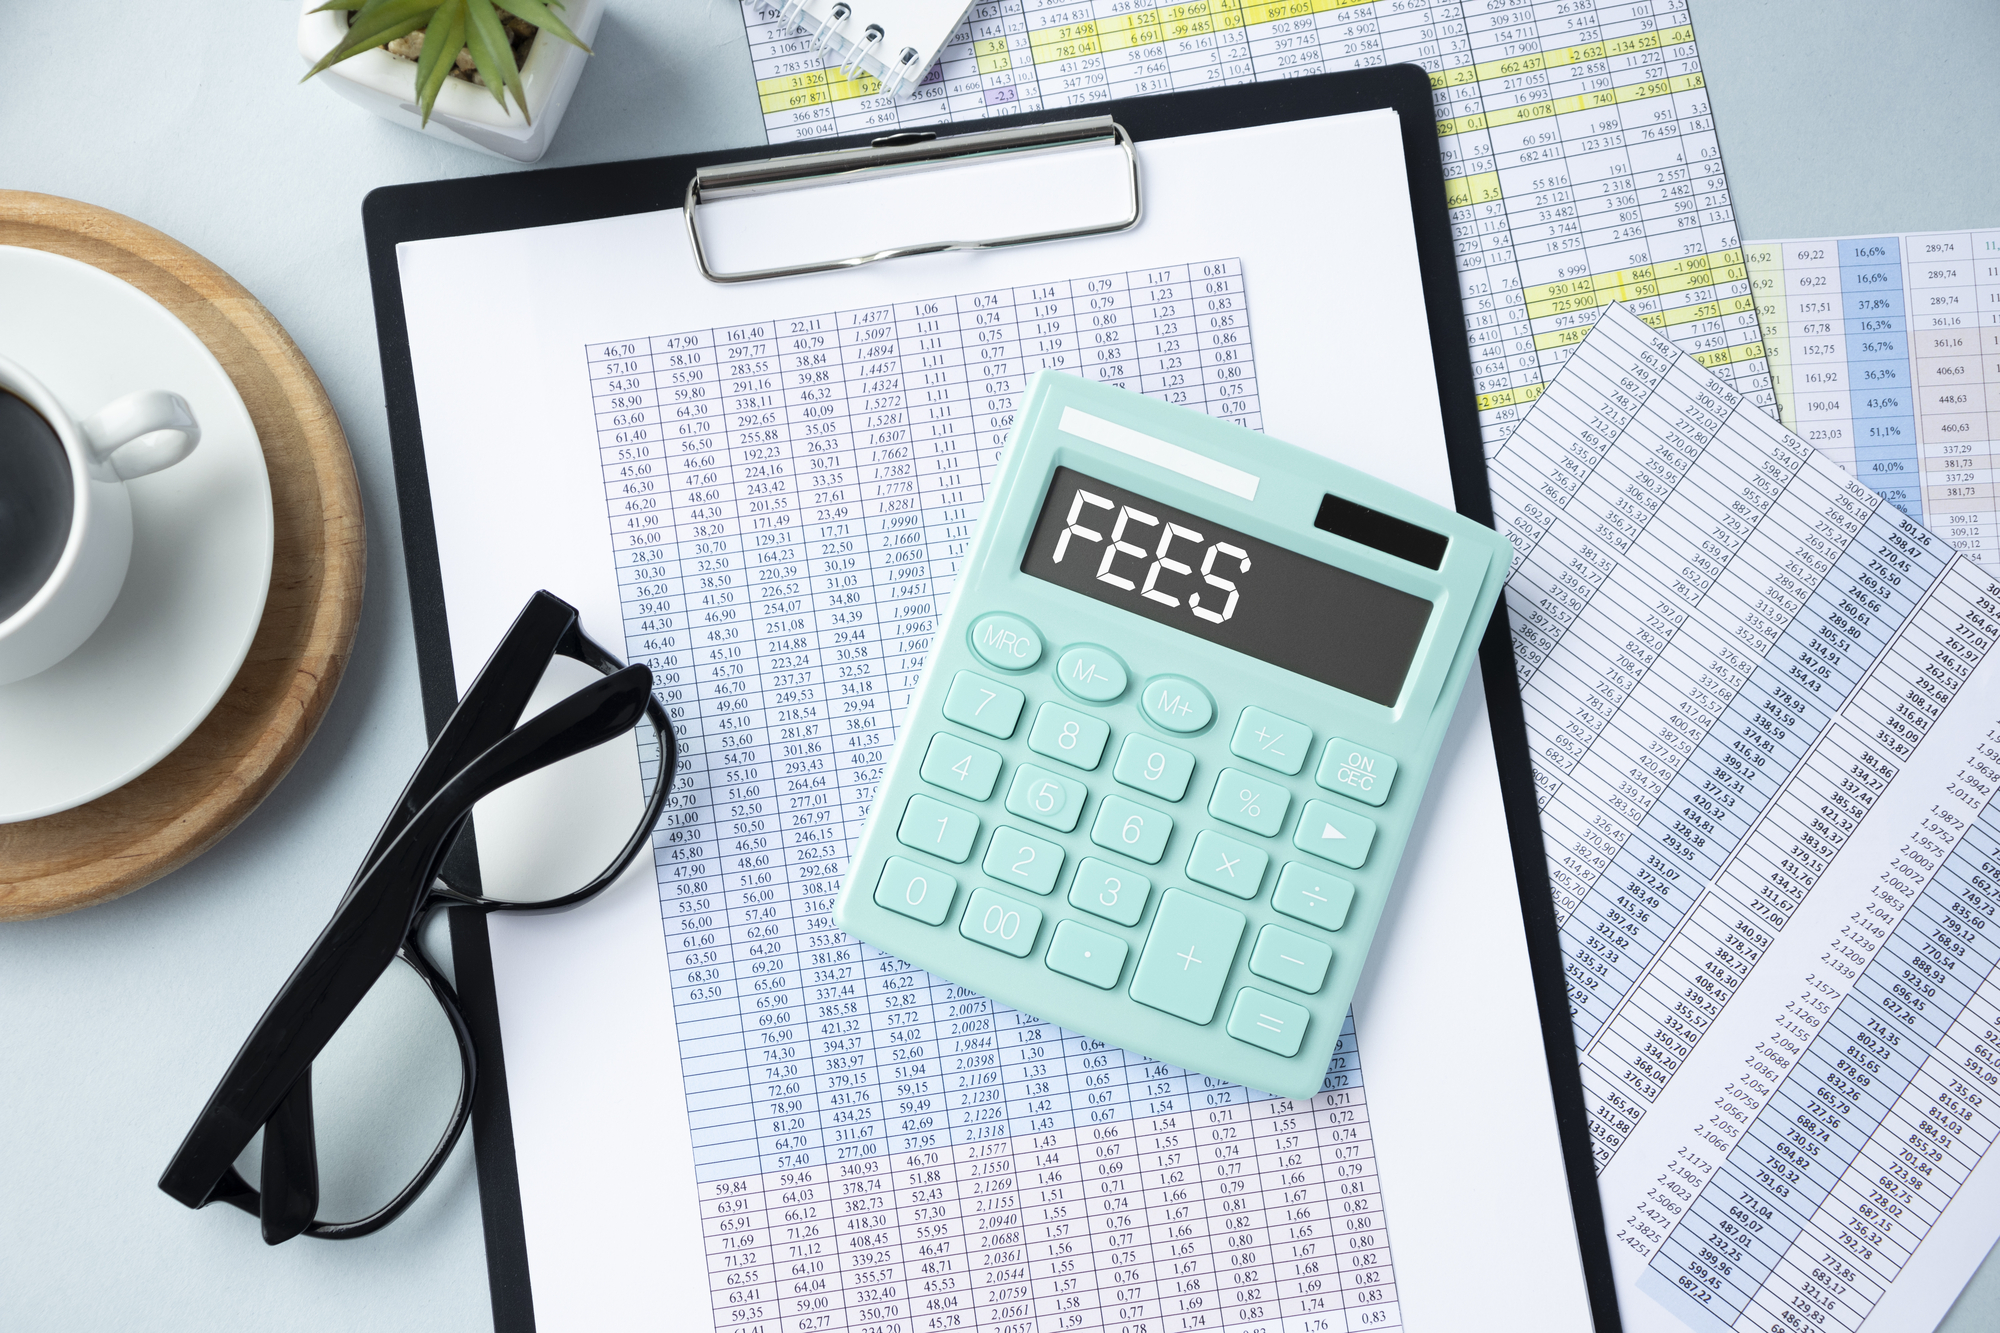 Fees – Part II: What is the impact of fees and am I getting good value for what I pay?